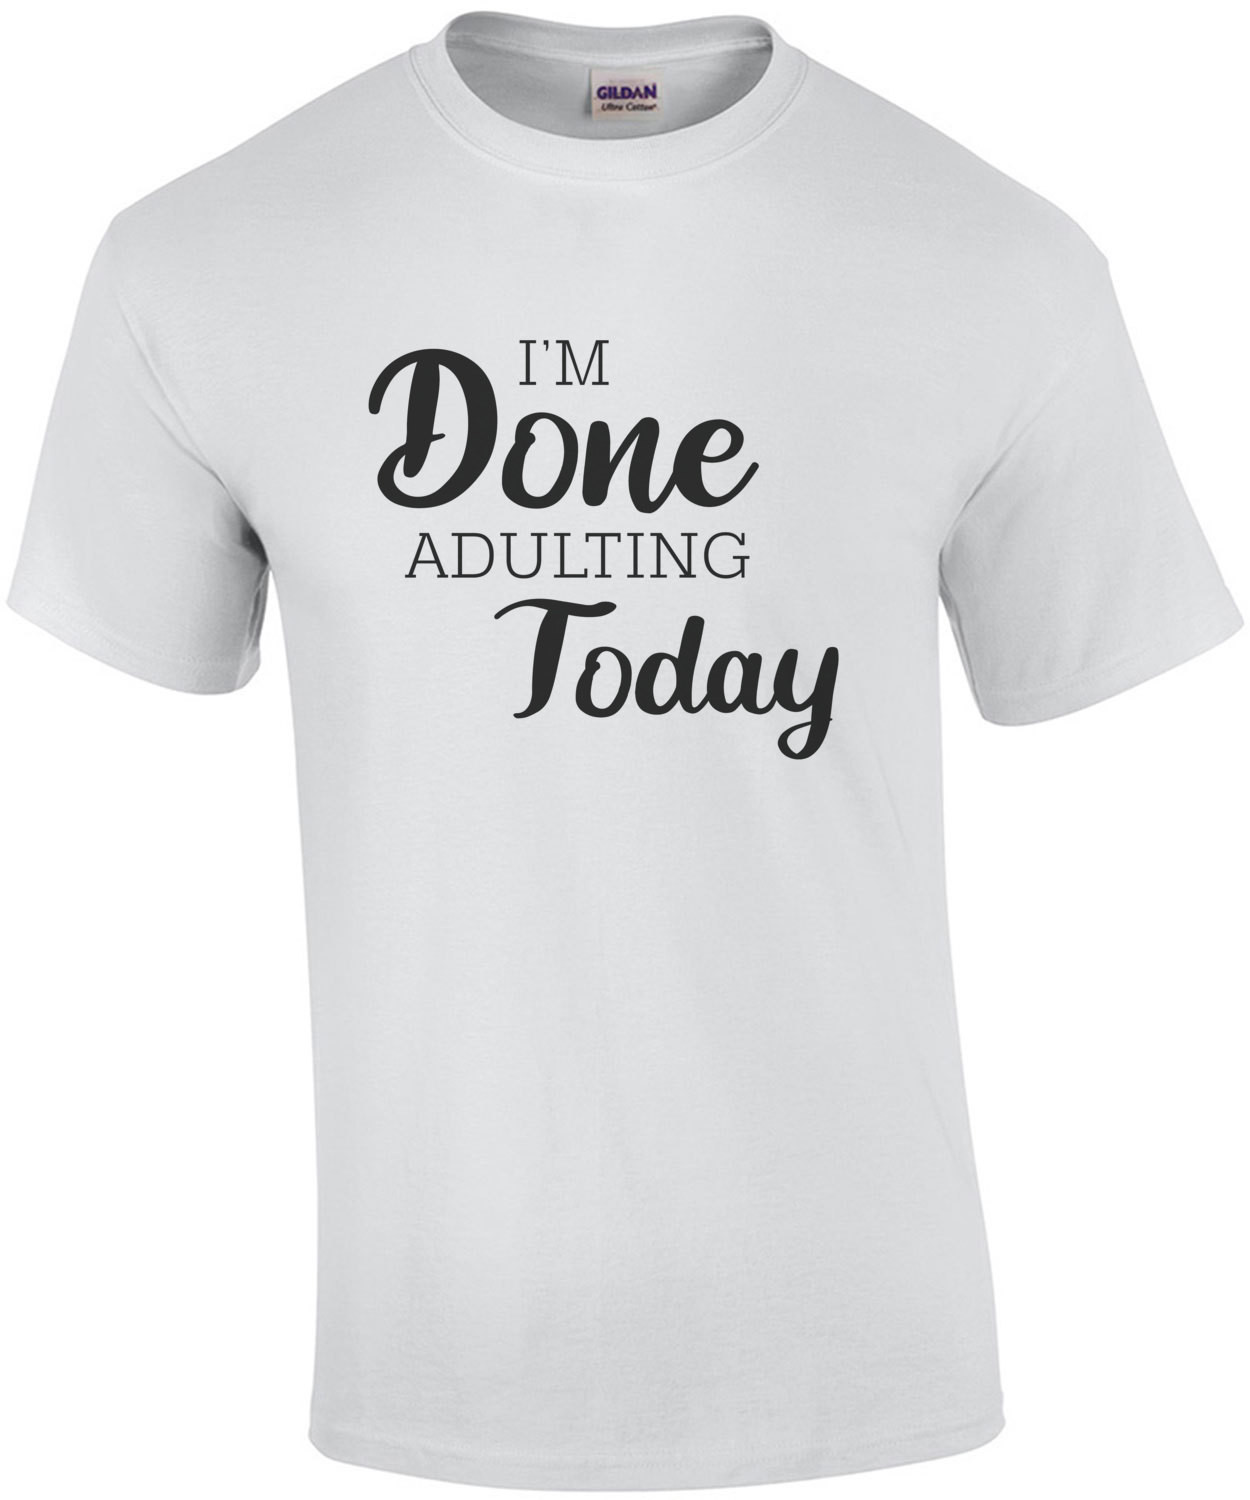 I'm done adulting today - funny t-shirt